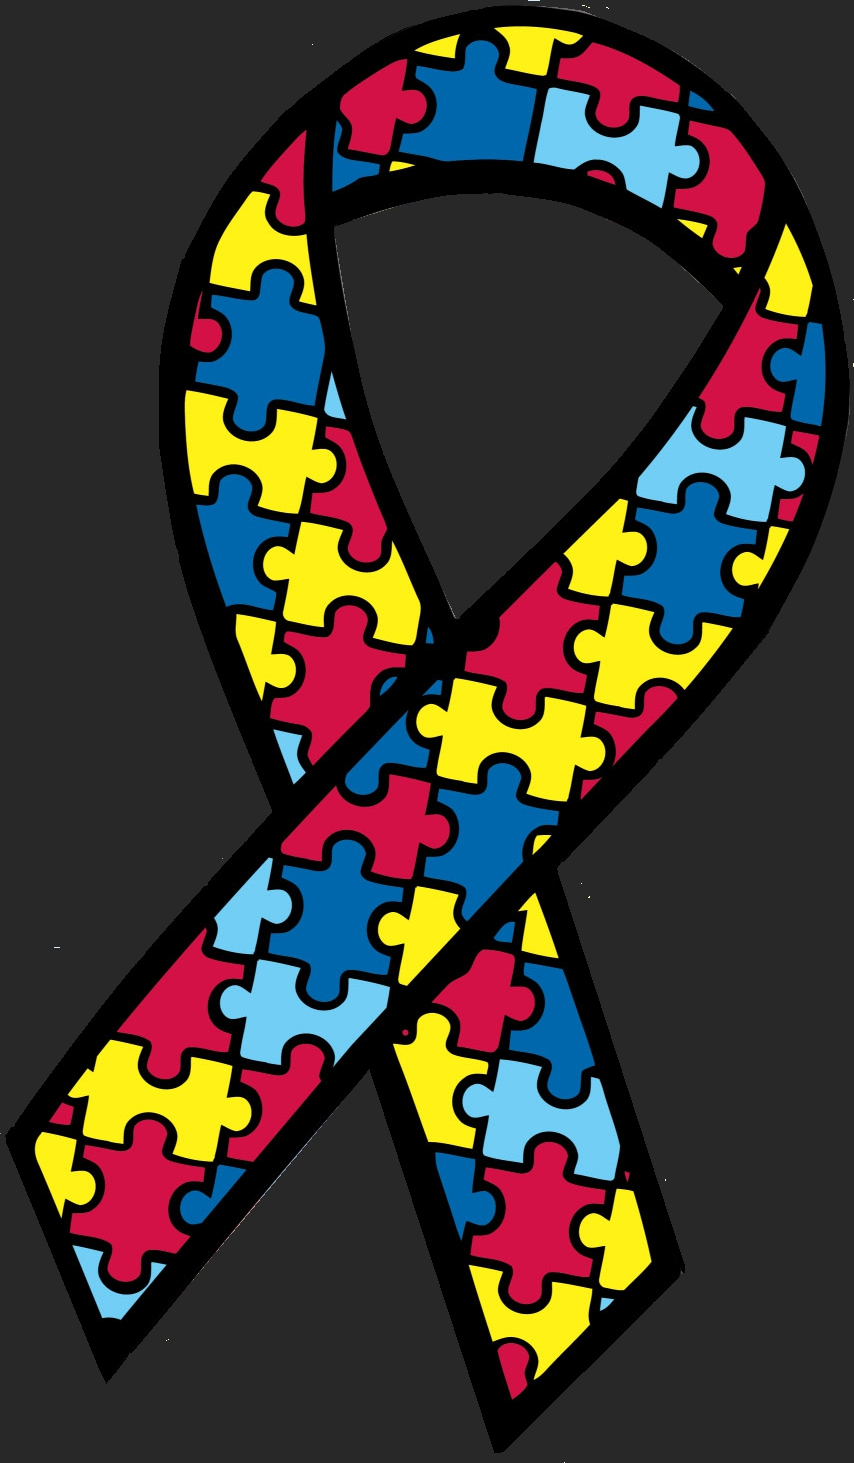 Autism Awareness Symbol Black And White - ClipArt Best